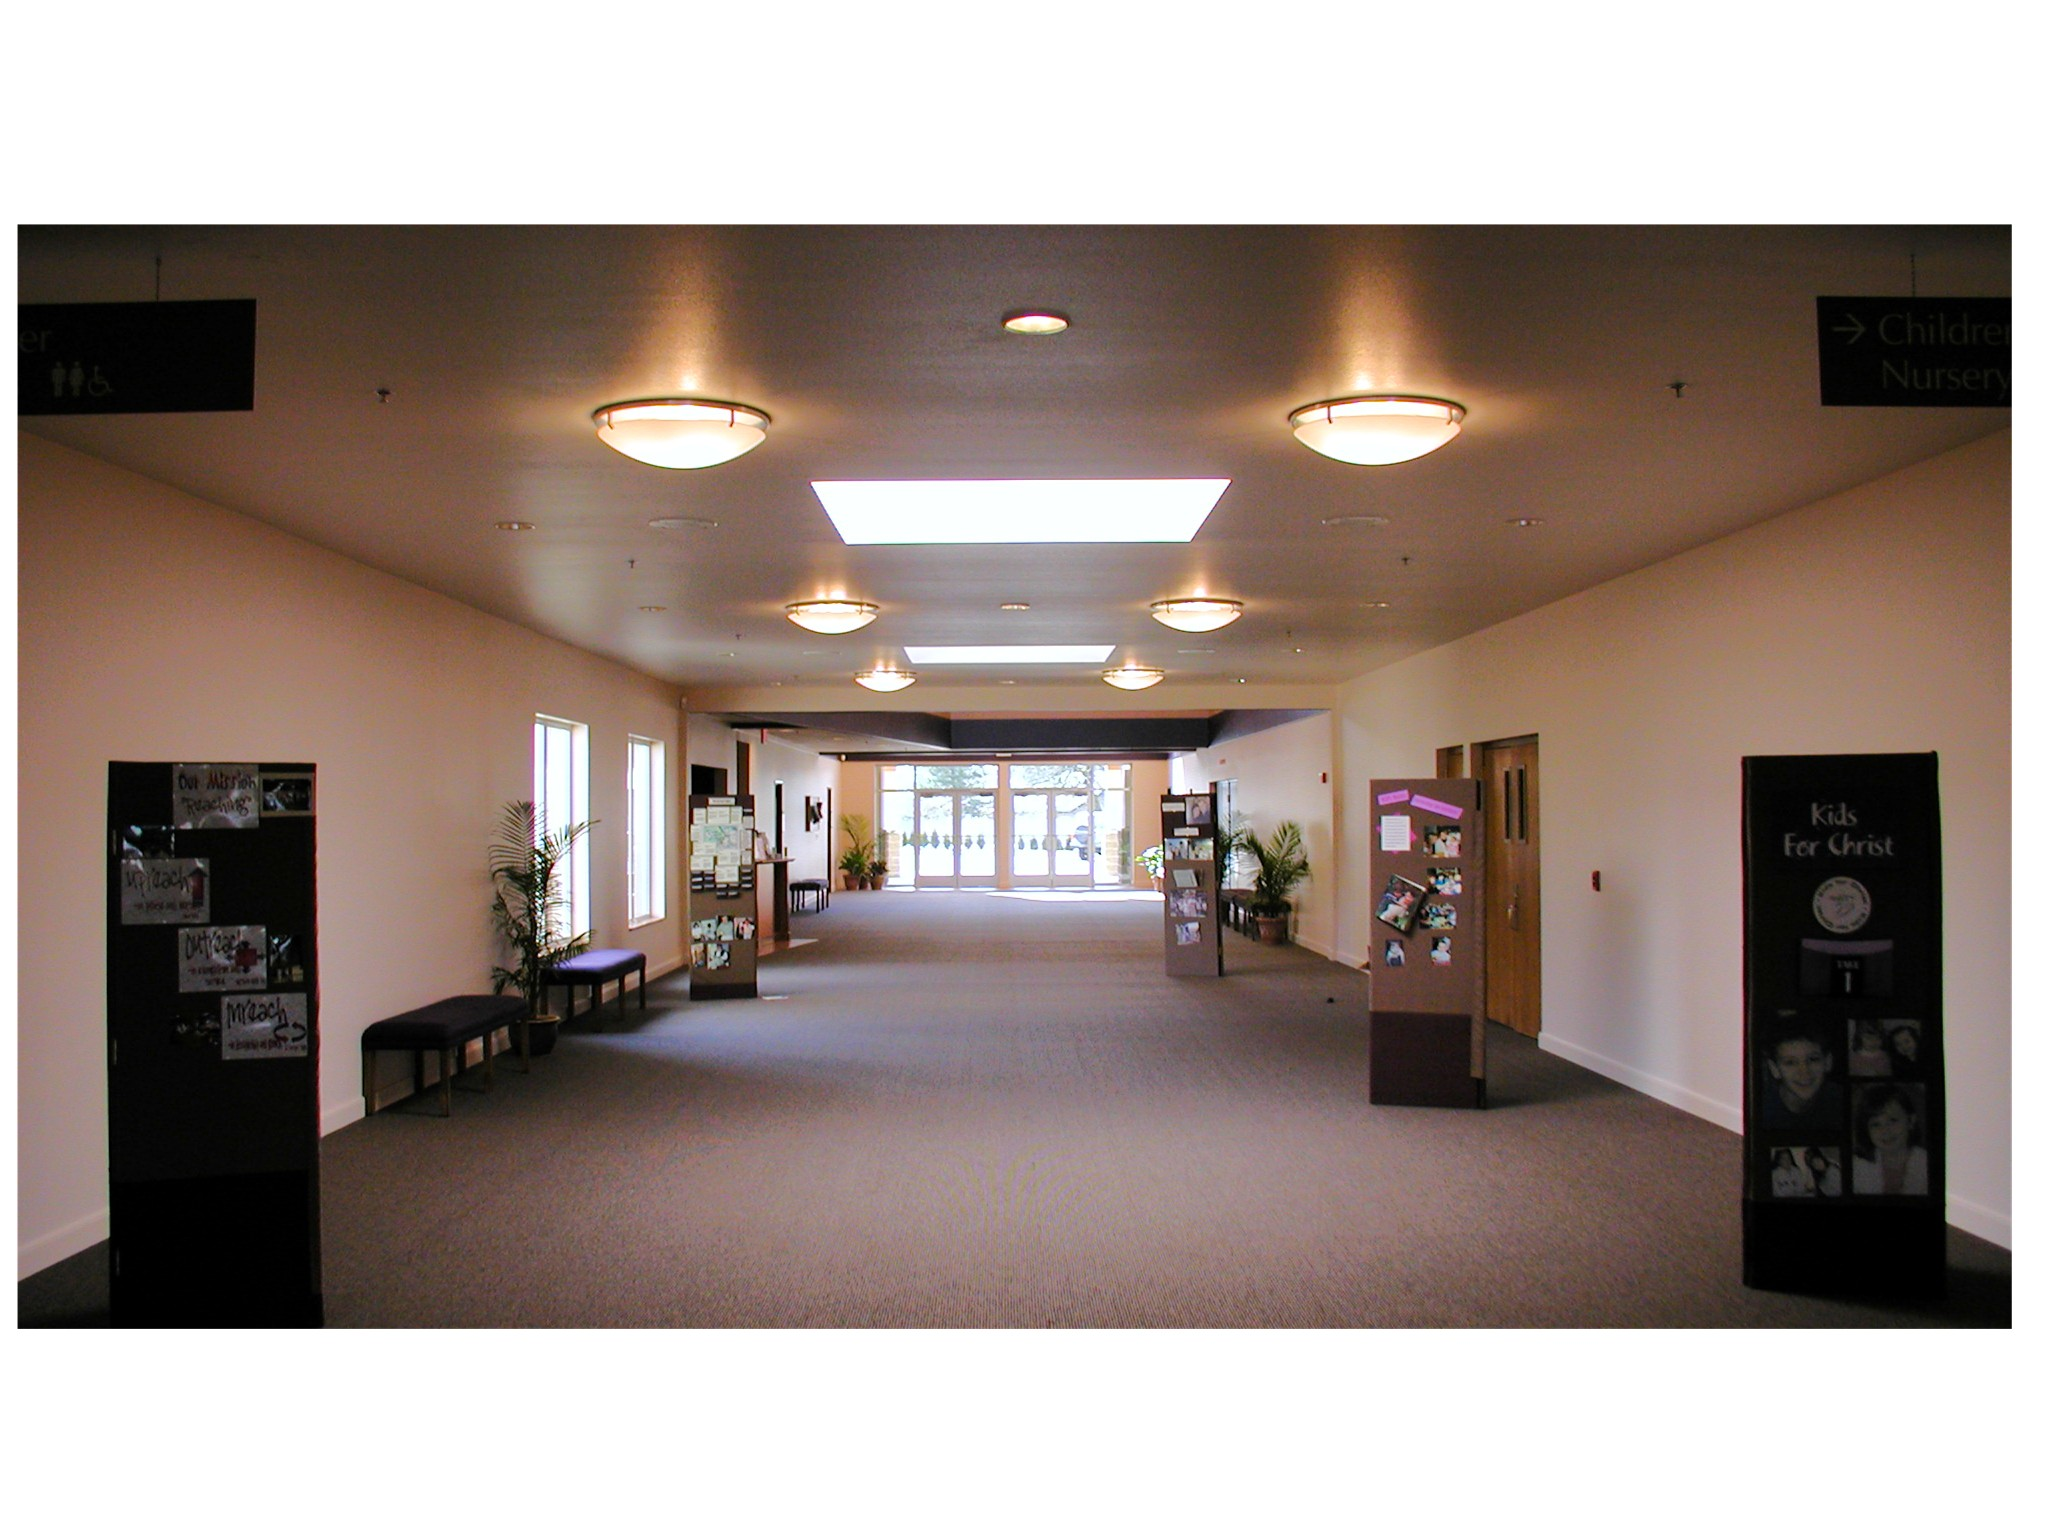 Westside Christian Church Main Foyer.JPG